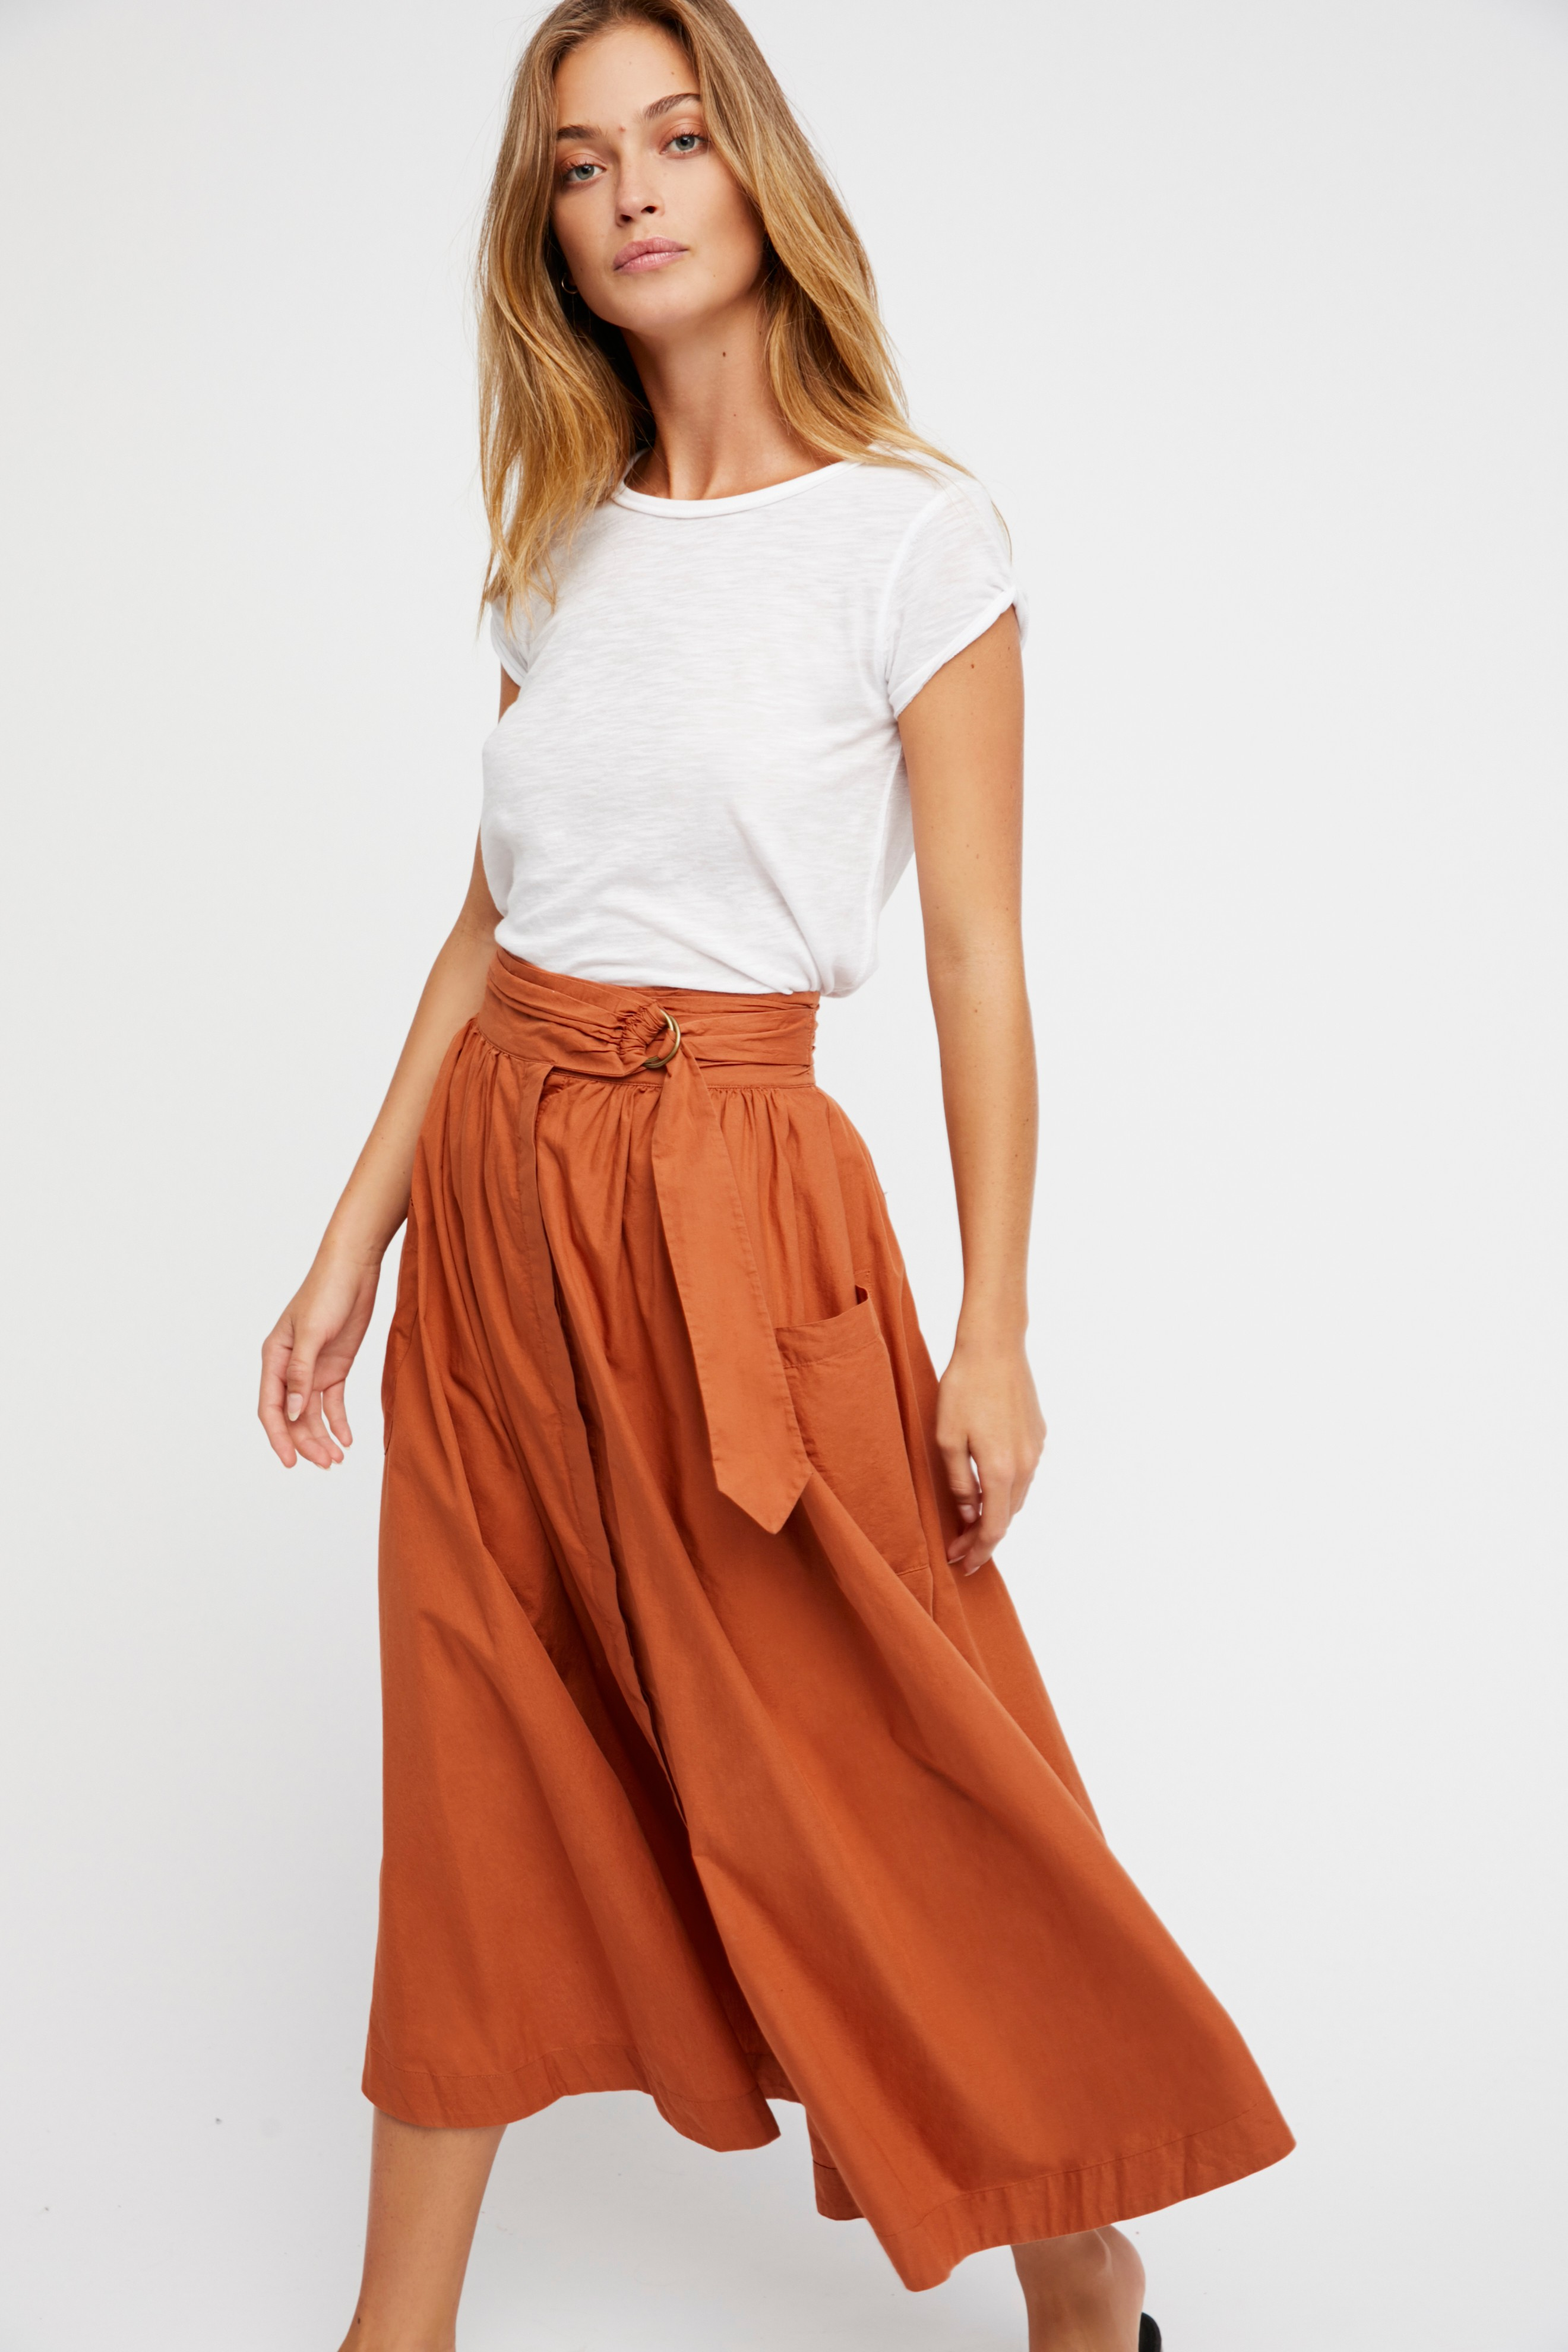 Shop the Dream of Me Midi Skirt